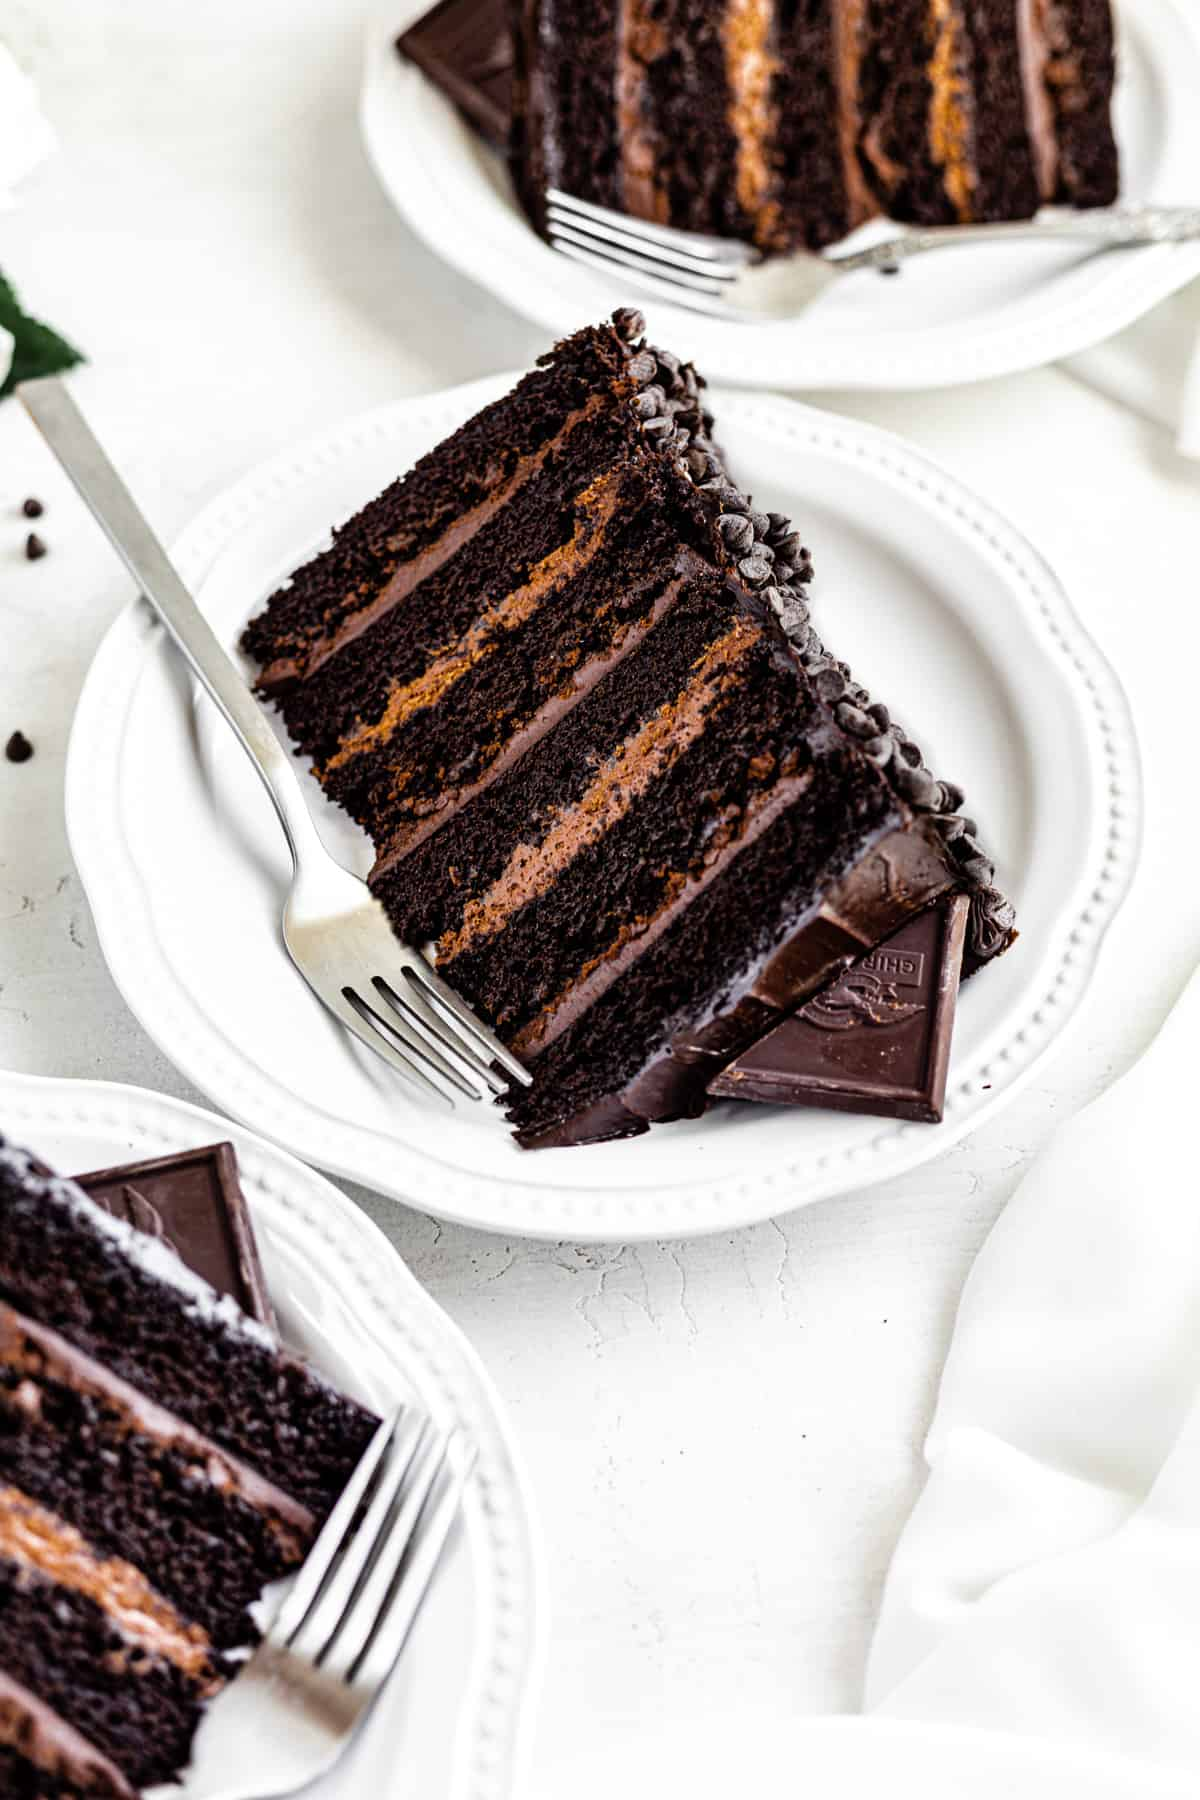 three slices of cake on white plates with a fork beside it